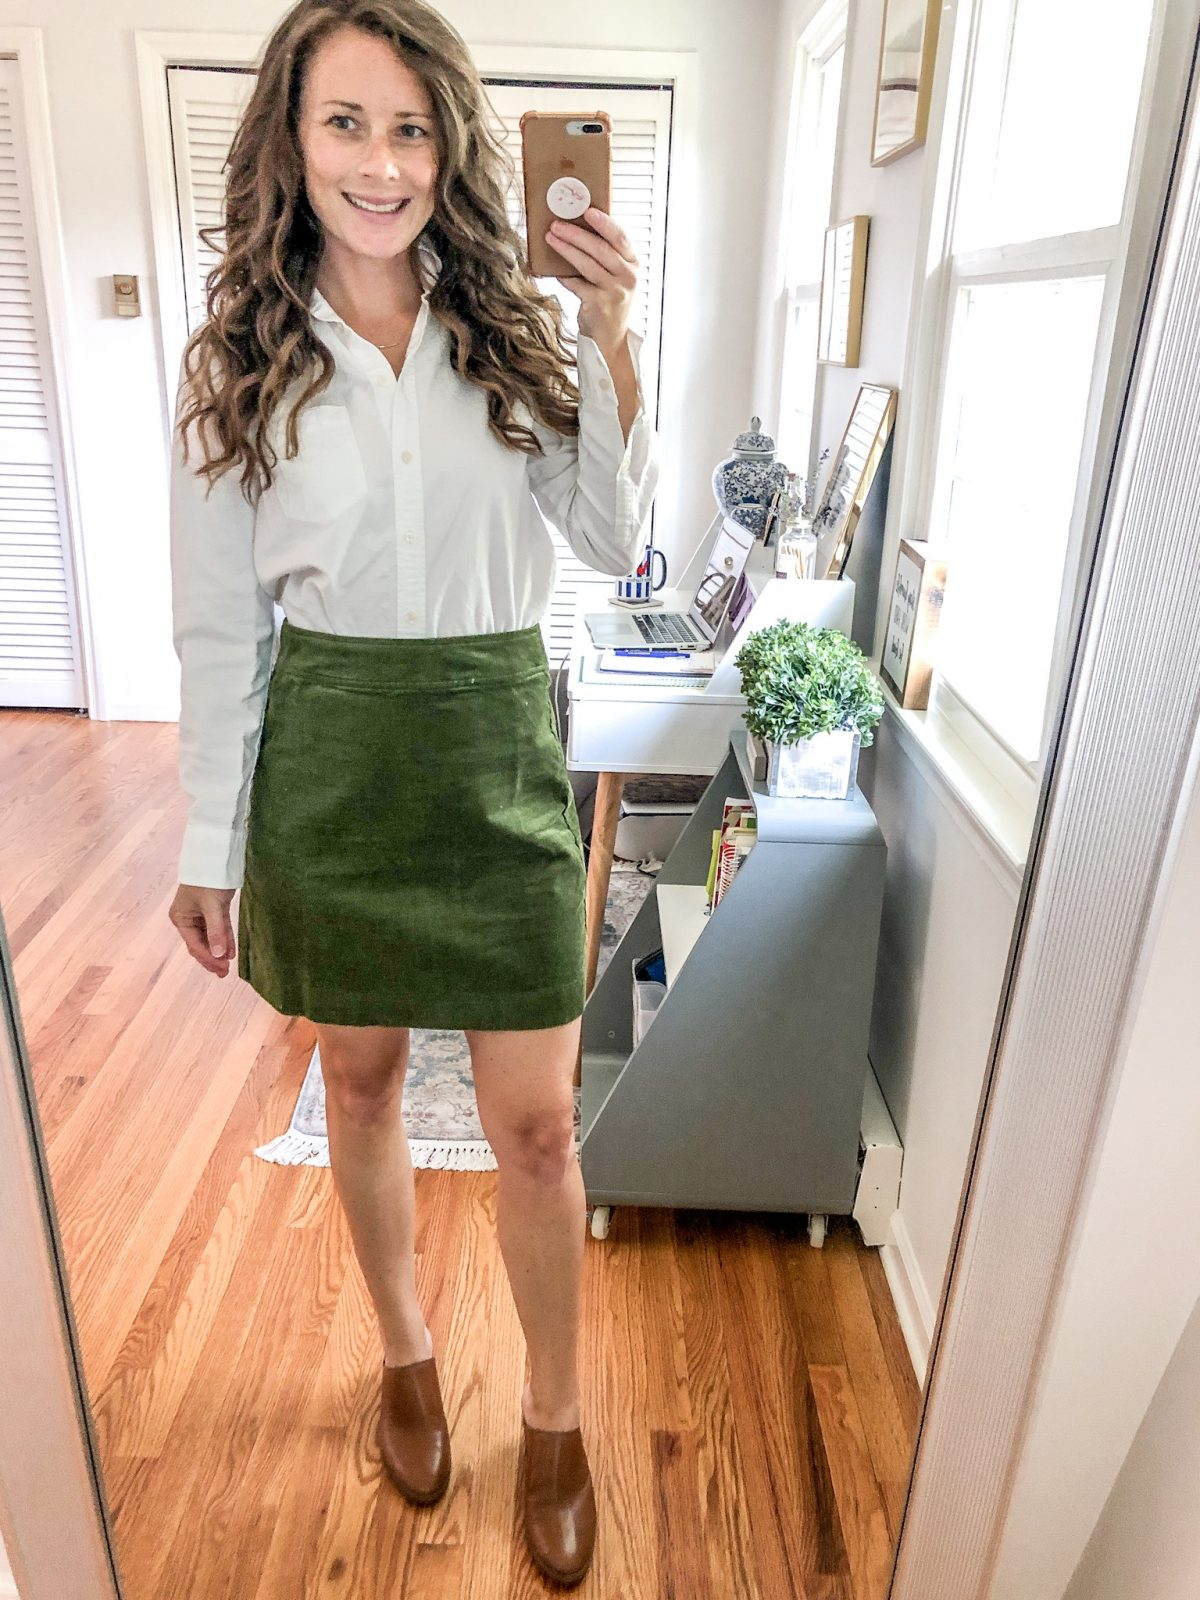 How to Style a Corduroy Skirt for Fall with a White Oxford